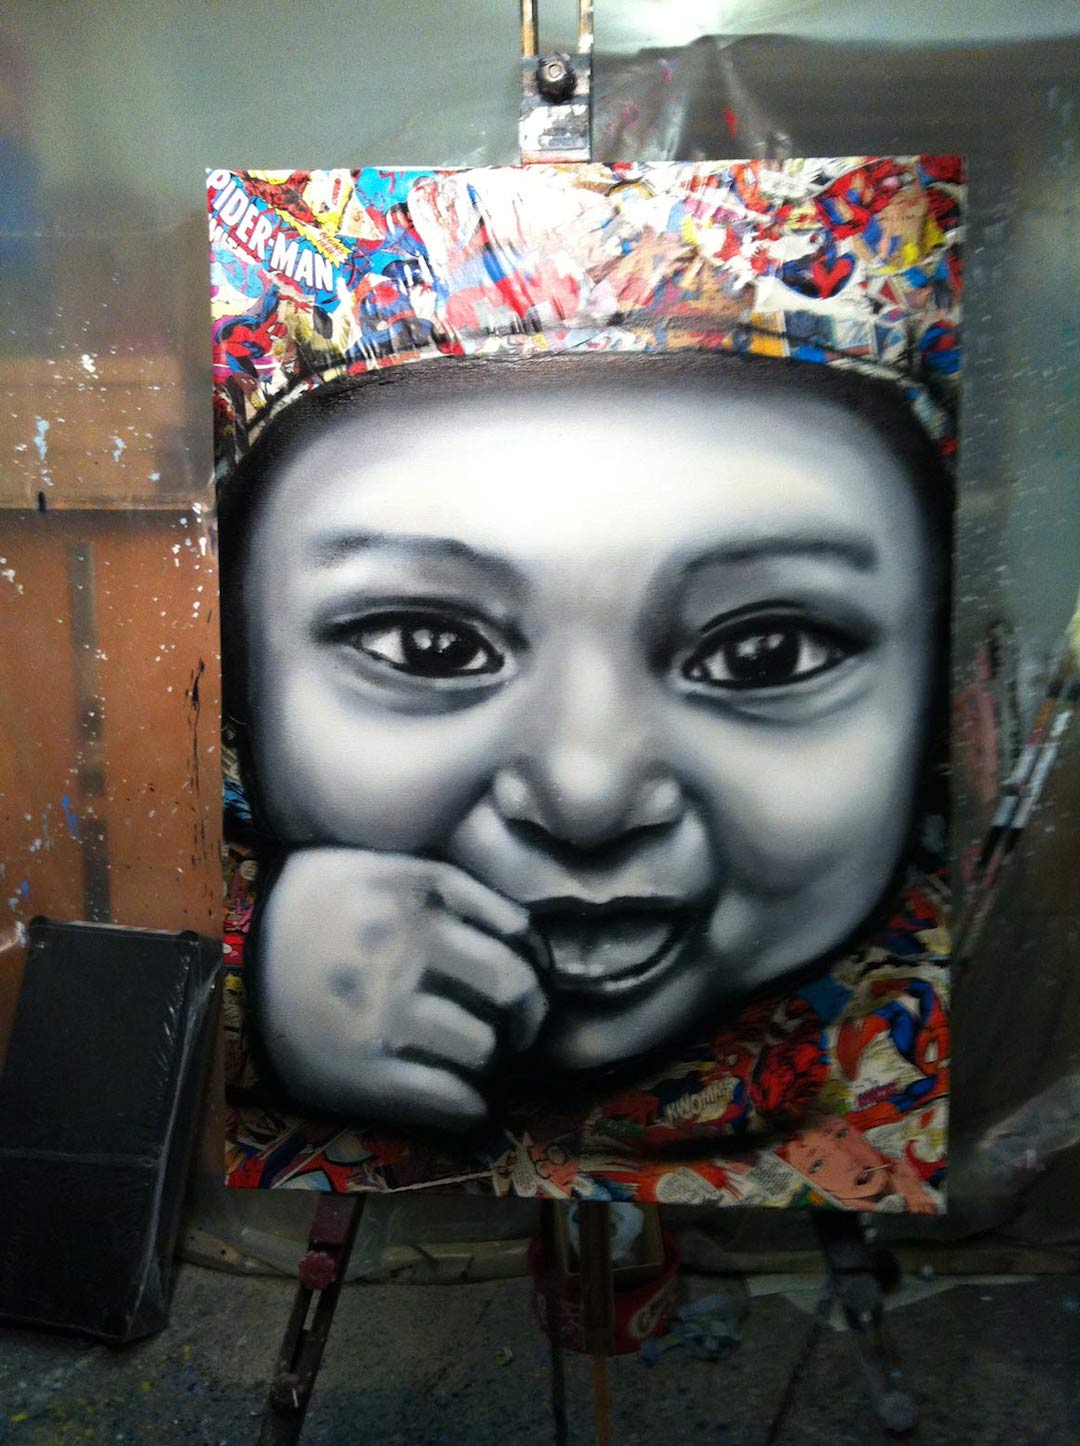 canvas-graffiti-bristol-zase-zasedesign-67